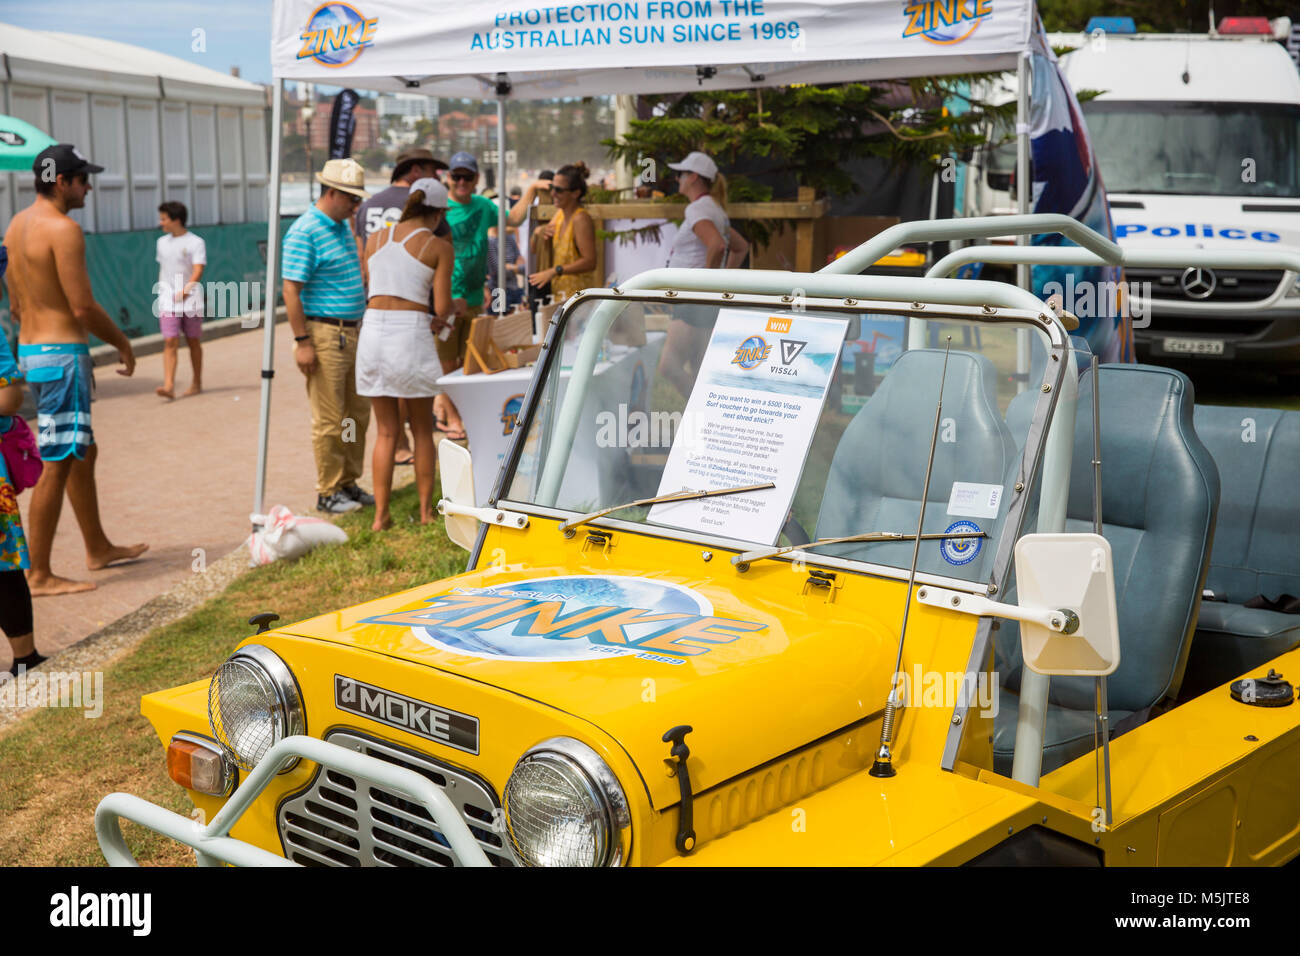 Yellow mini make vehicle at Manly beach in Sydney,Australia - Stock Image